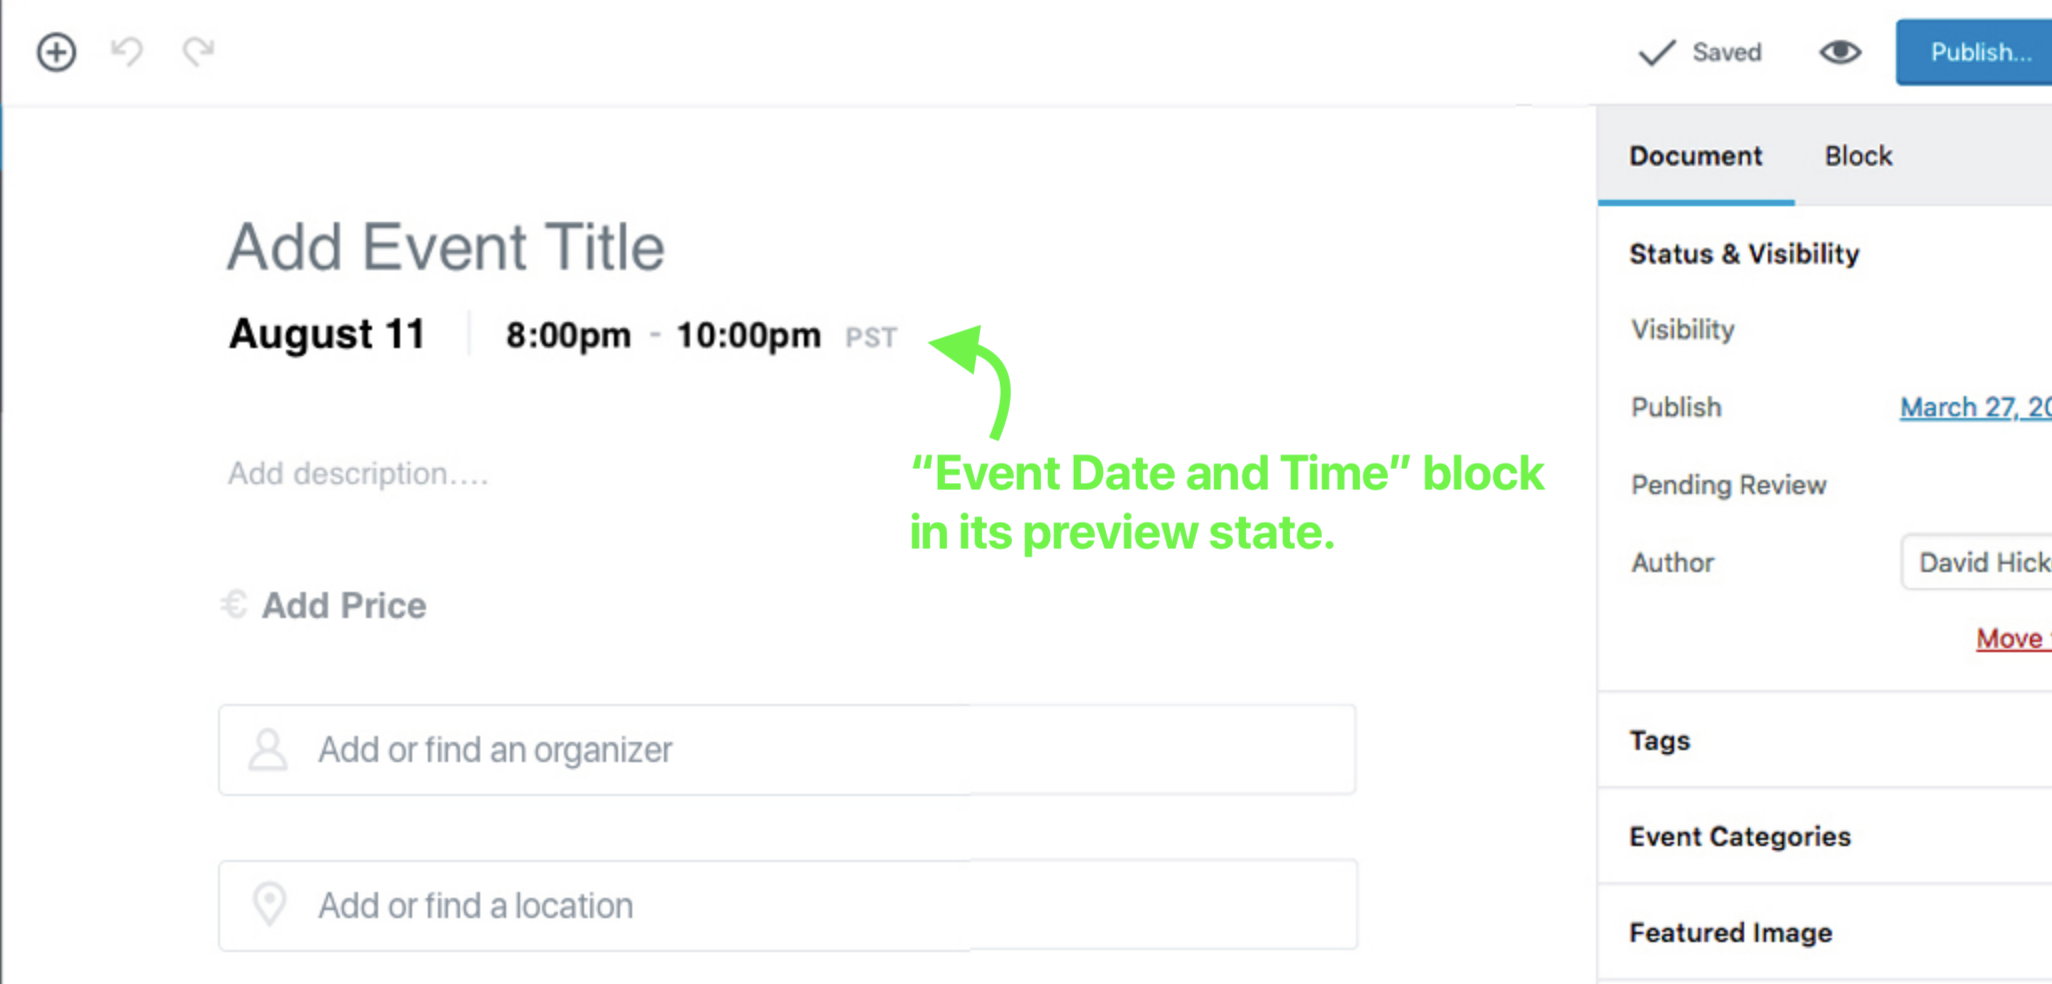 The Date and Time Block's Preview State